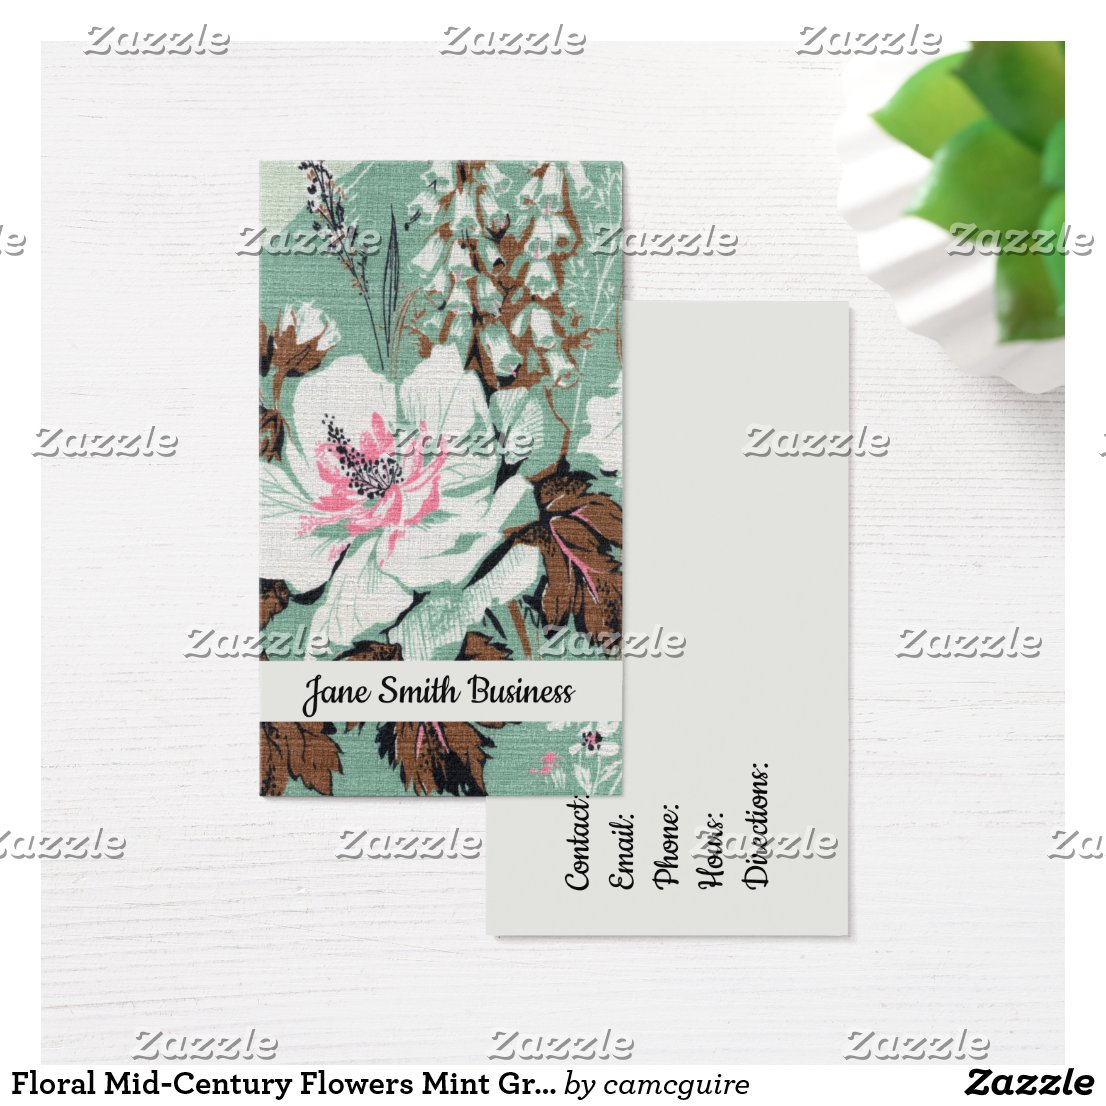 Floral Mid-Century Flowers Mint Green Blooms Business Card